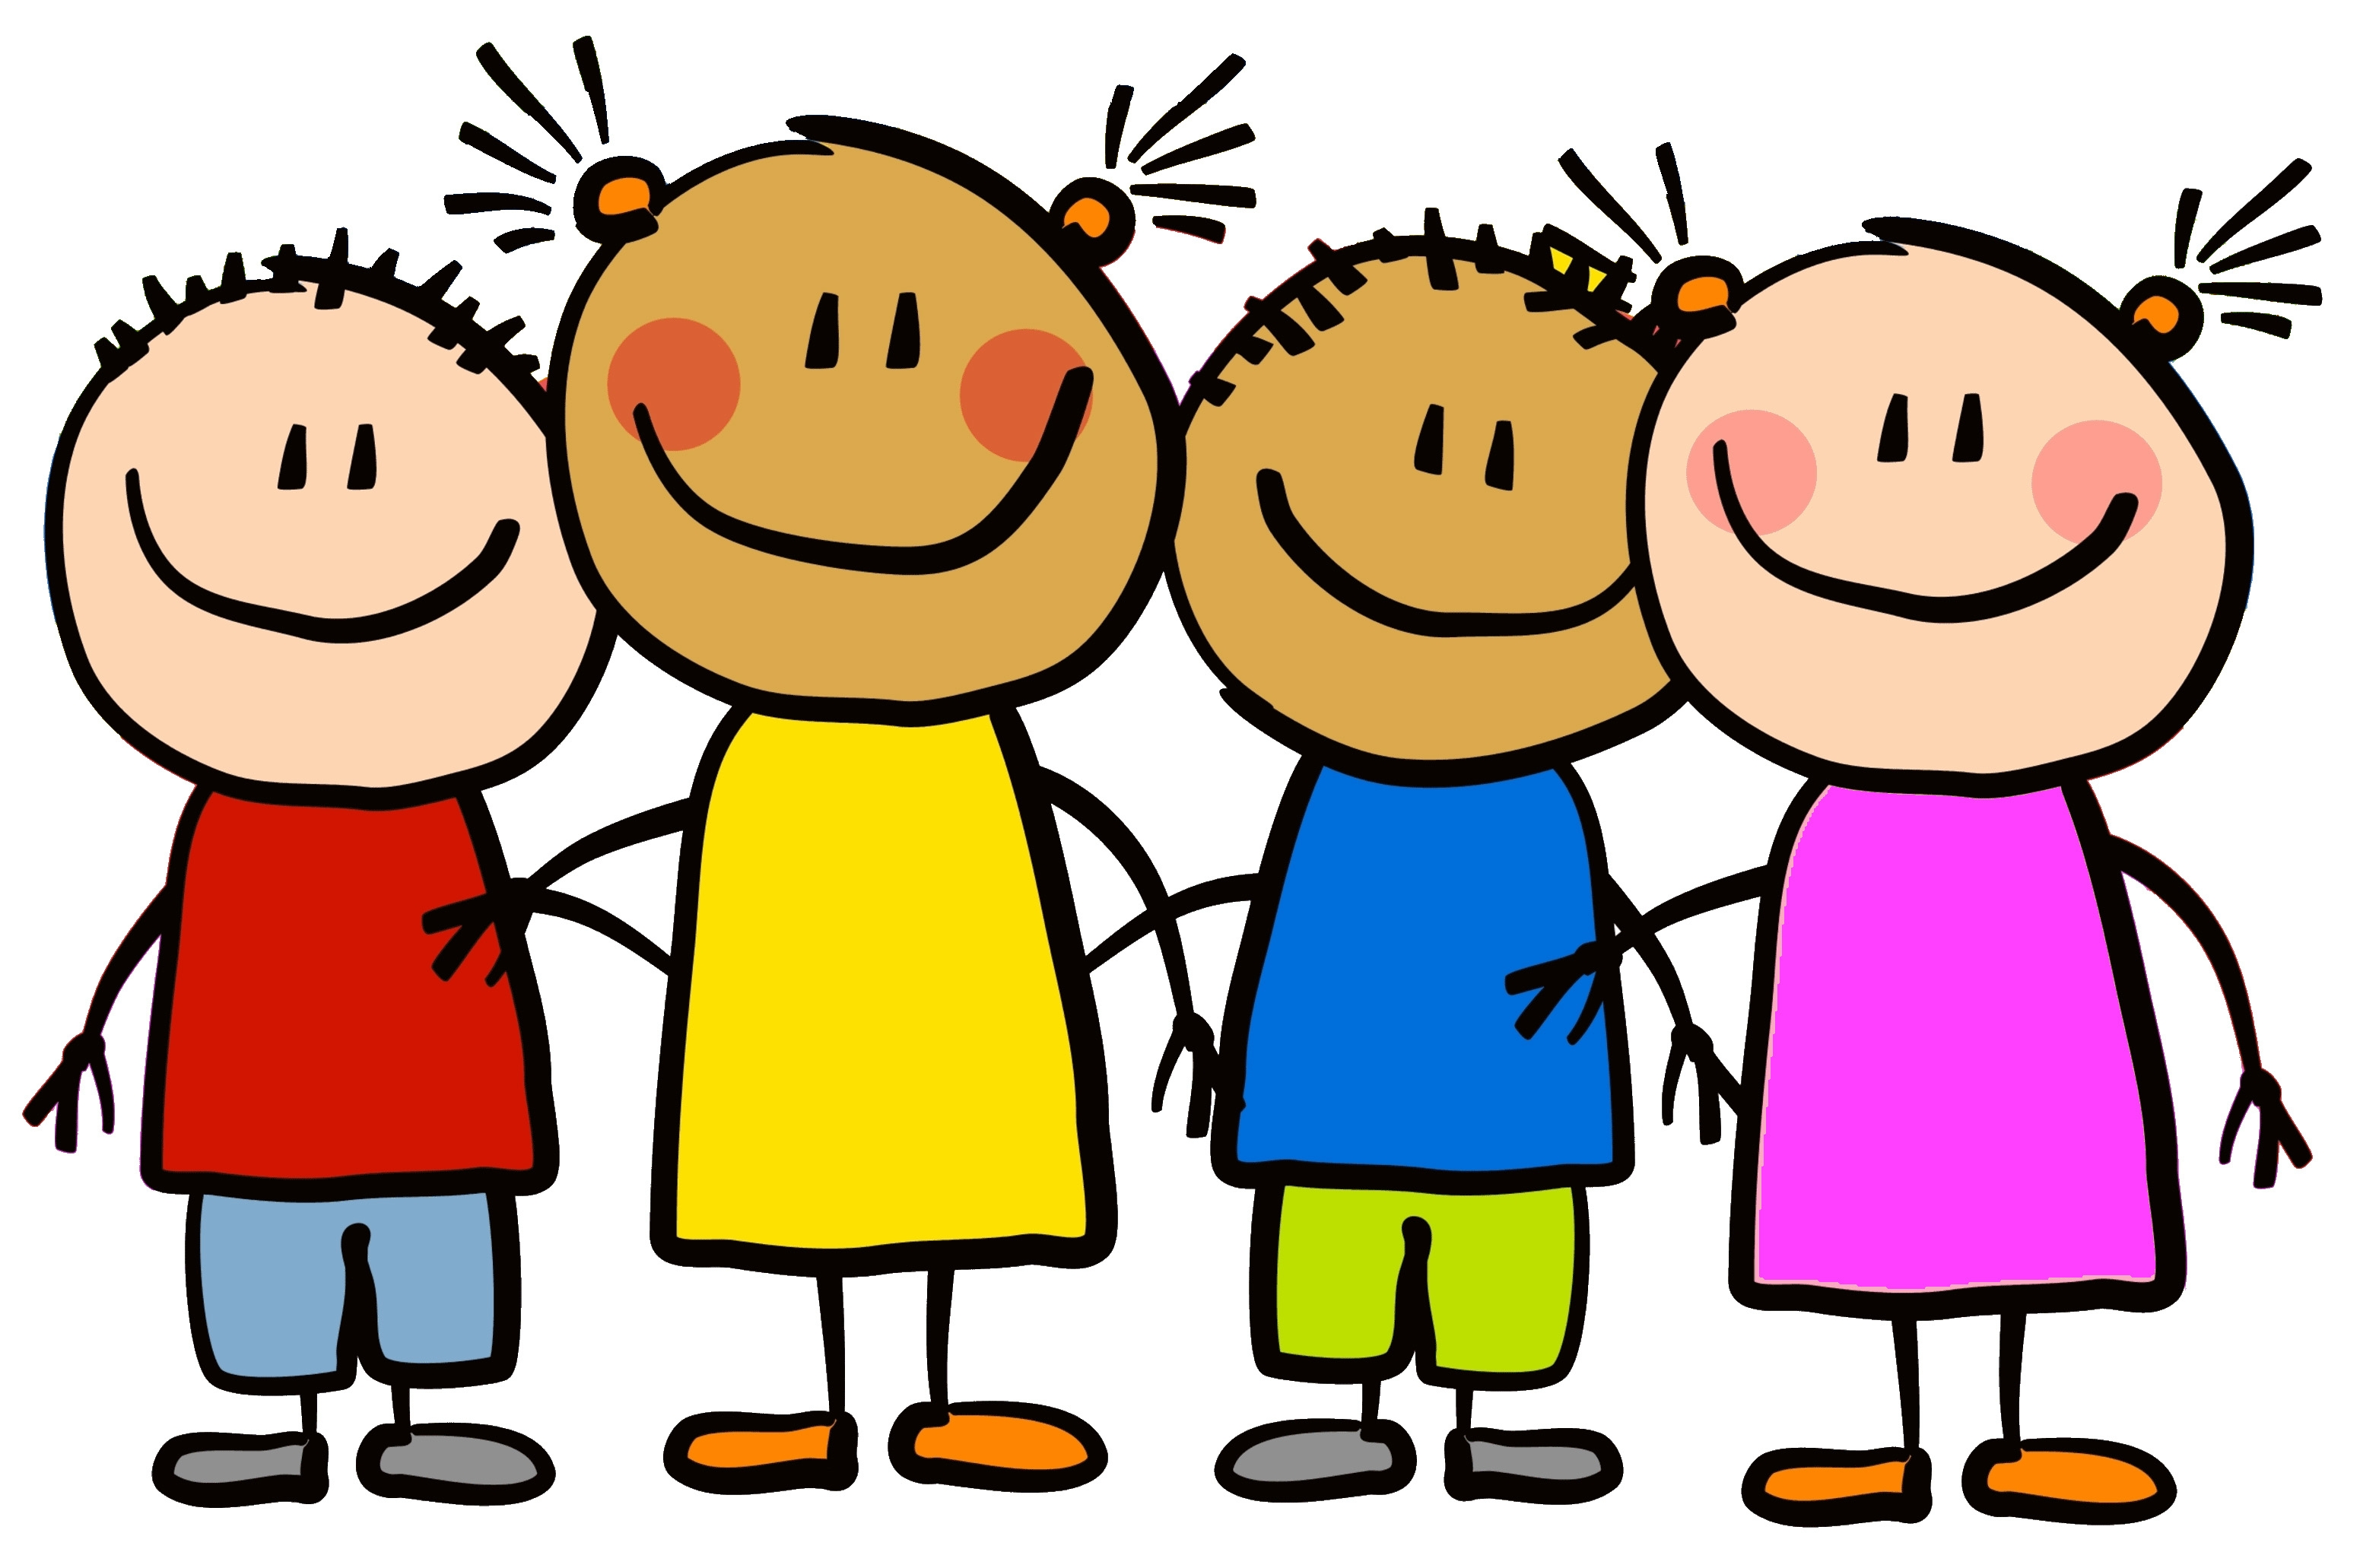 Friendship kindergarten frien - Friendship Clipart